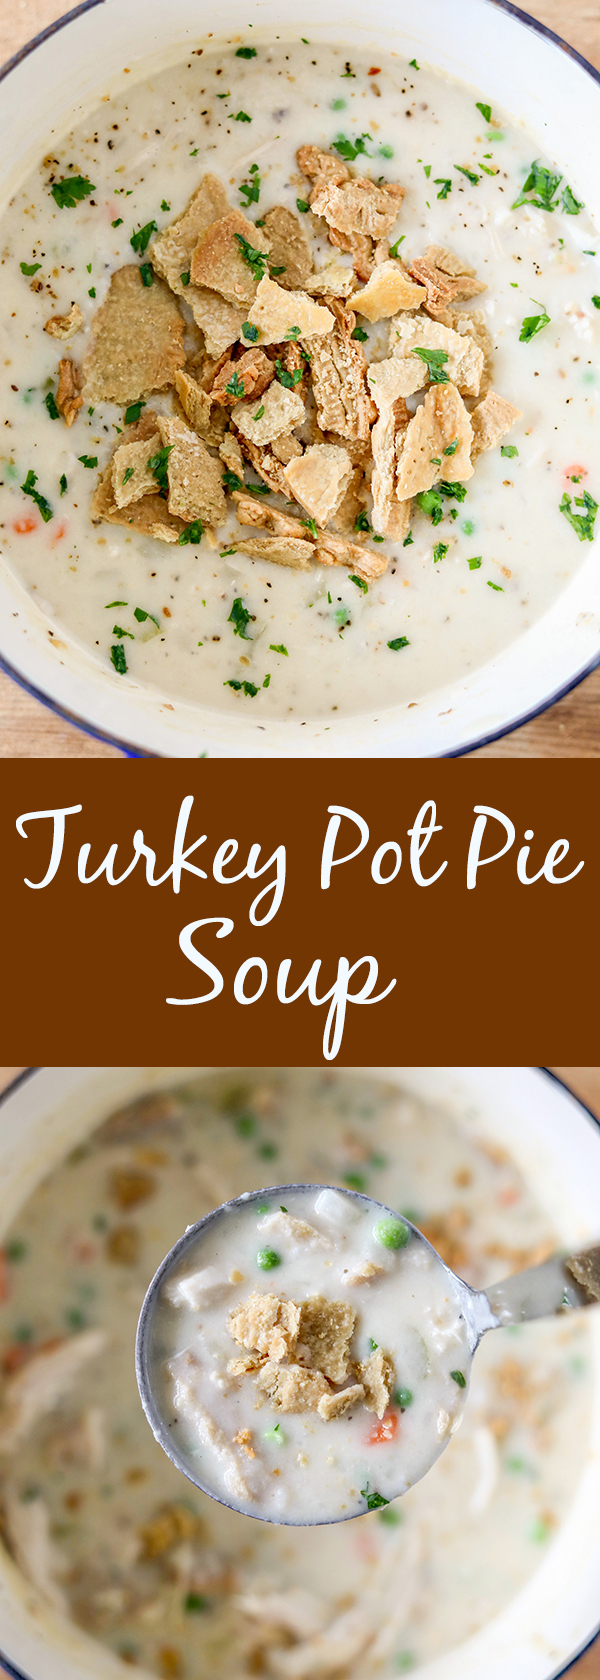 Easy Turkey Pot Pie Soup